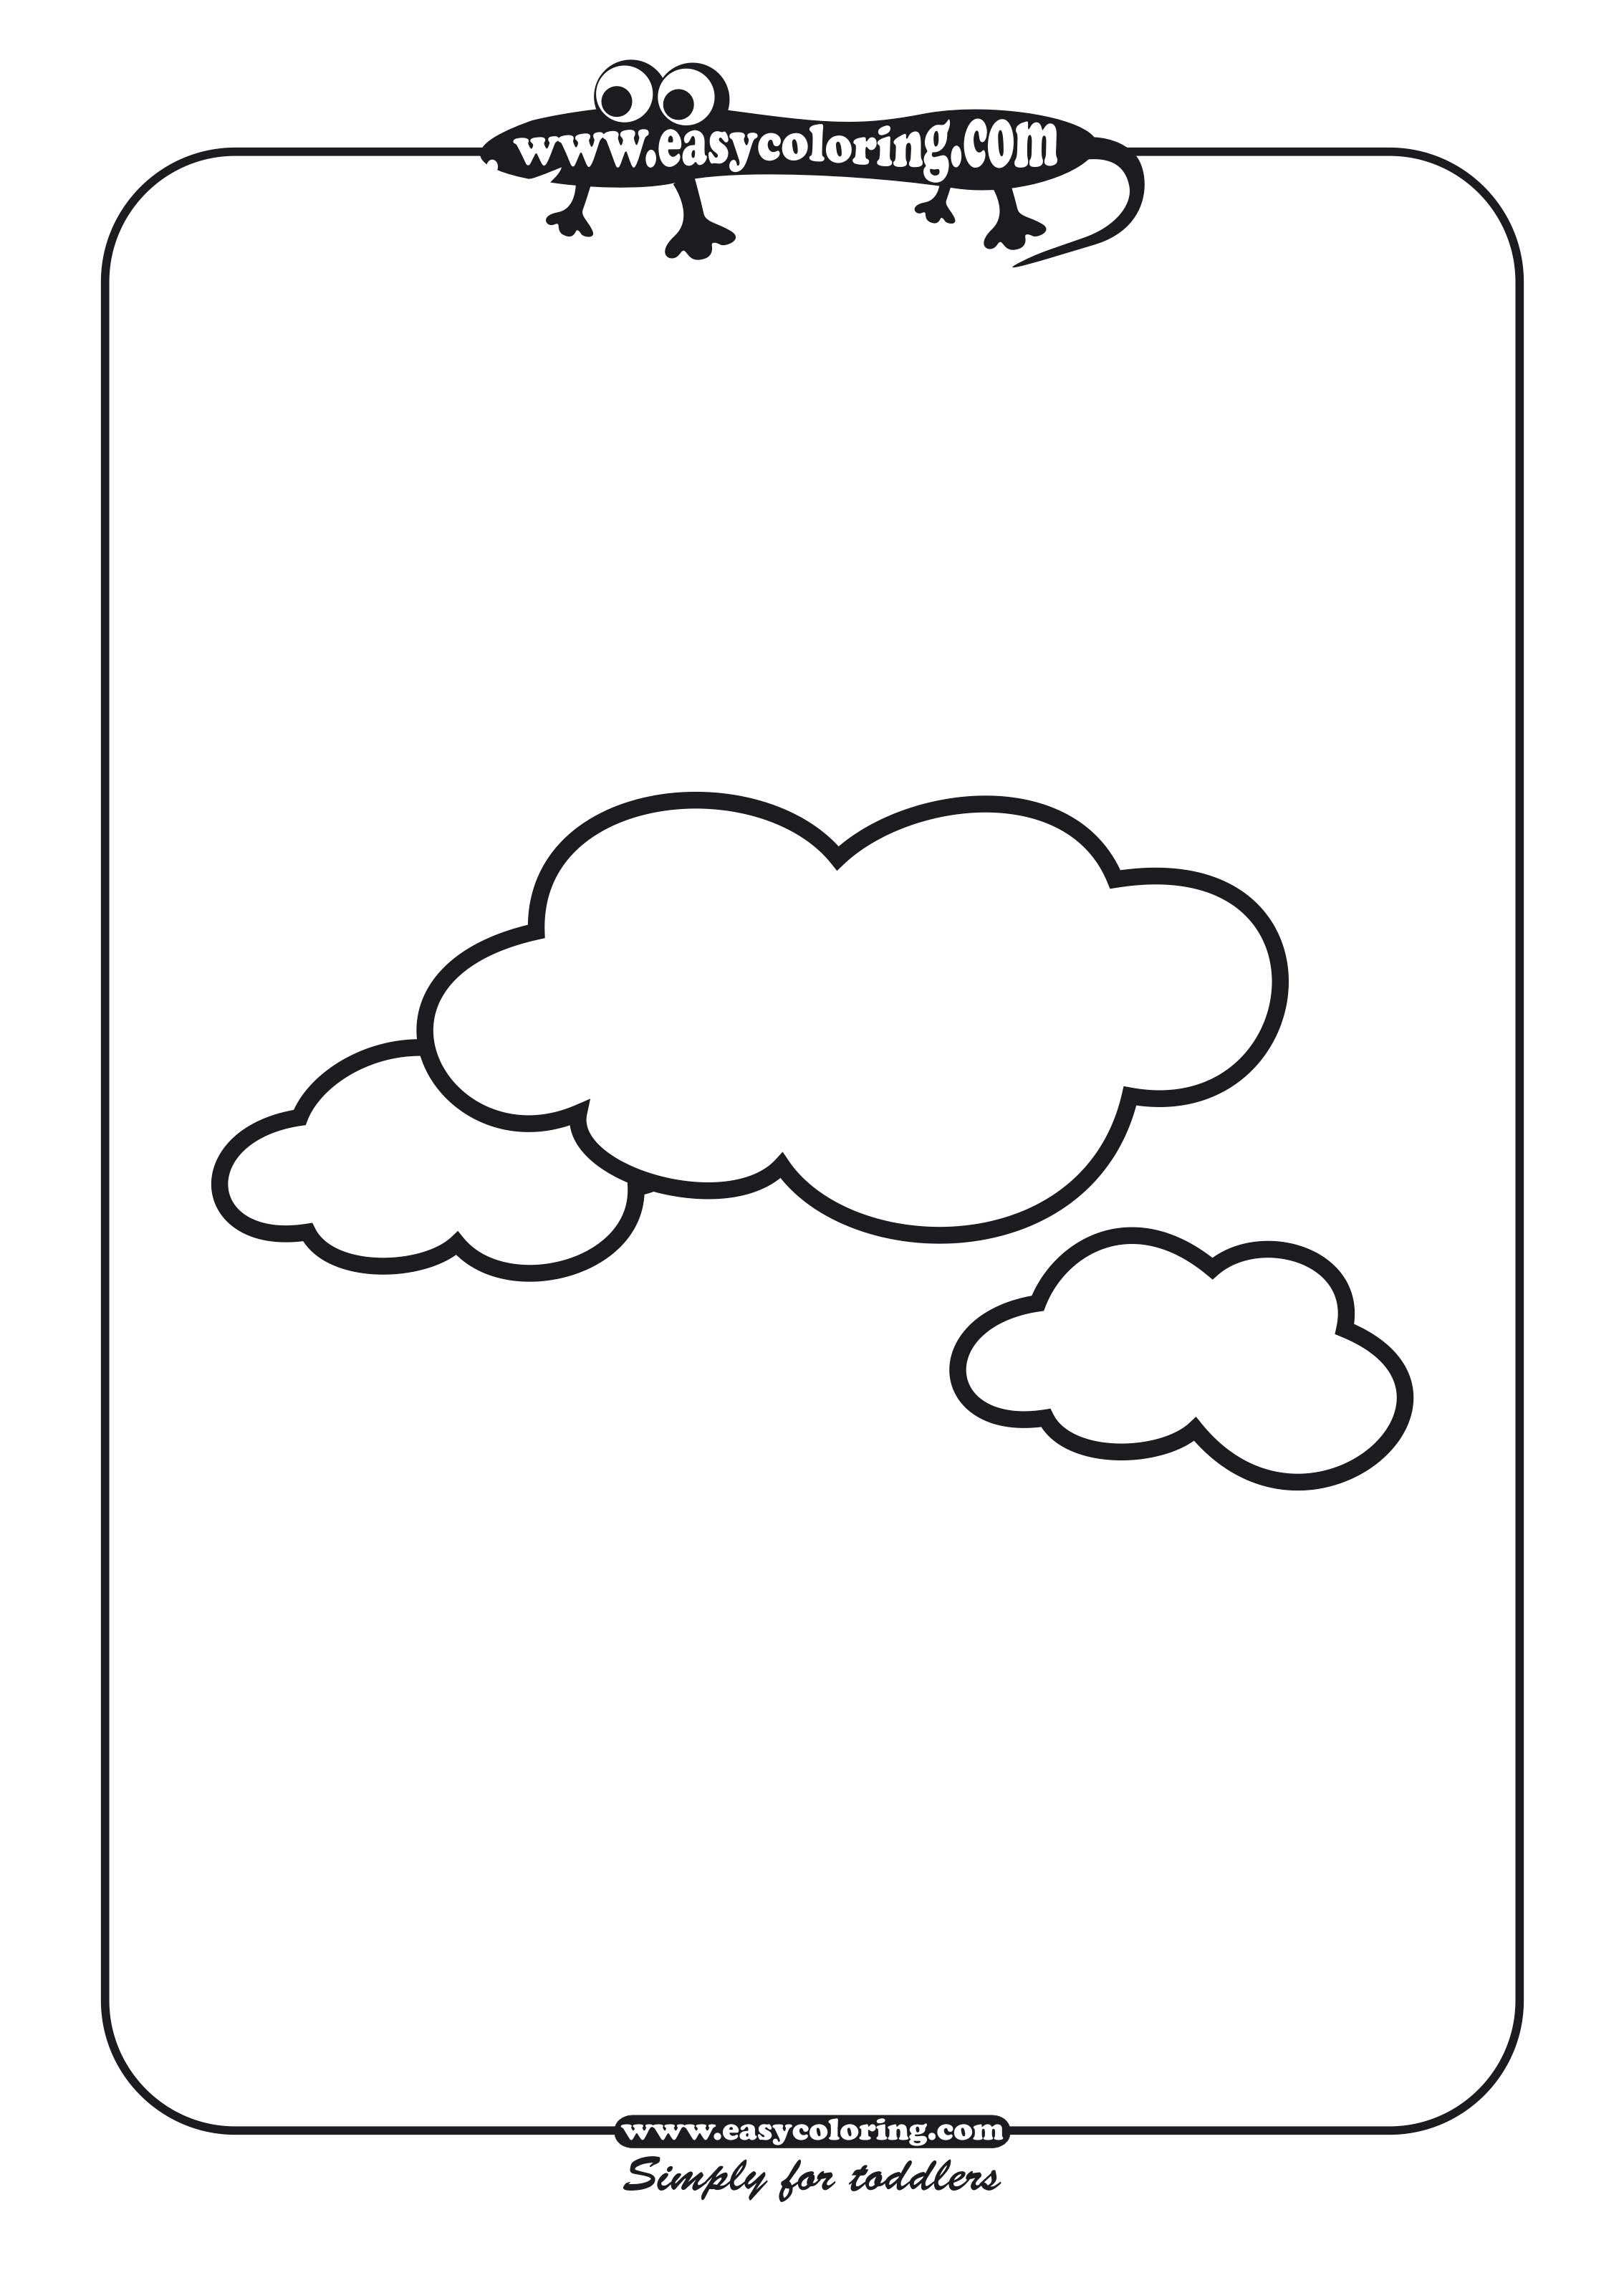 Clouds - Simple shapes | Easy coloring pages for toddlers